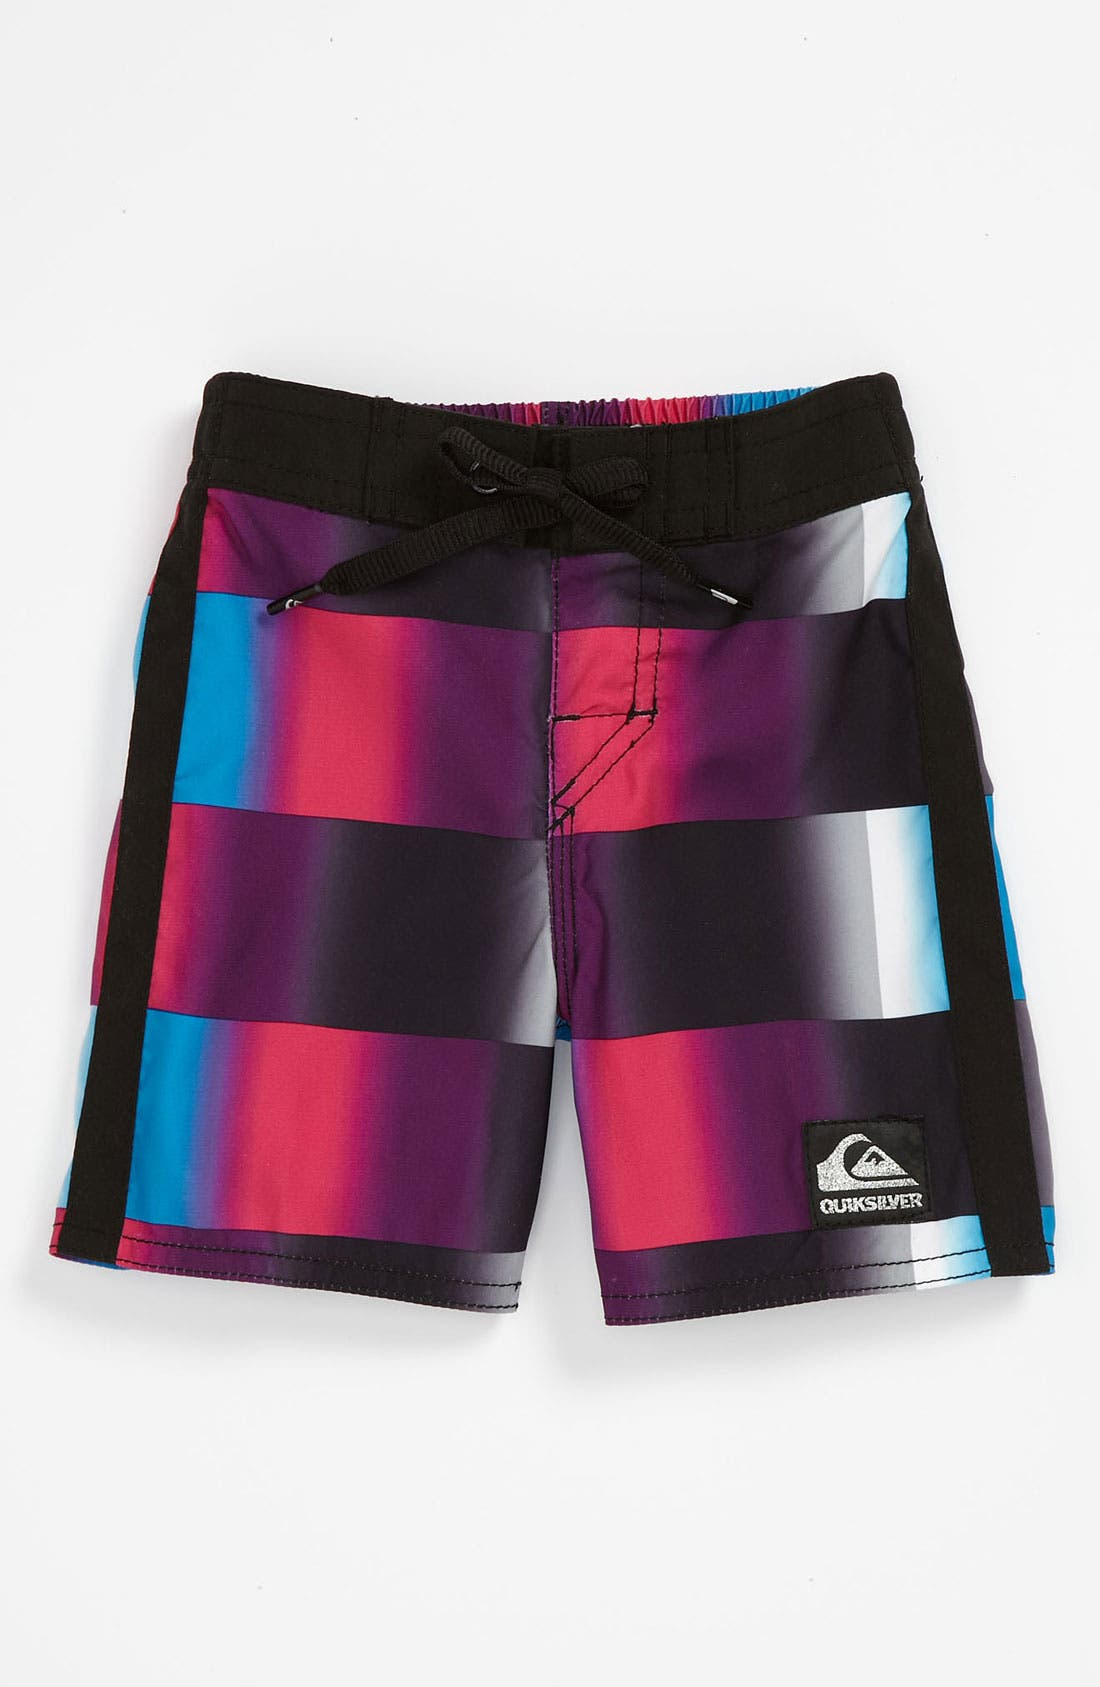 Alternate Image 1 Selected - Quiksilver 'Get Rad' Board Shorts (Toddler)